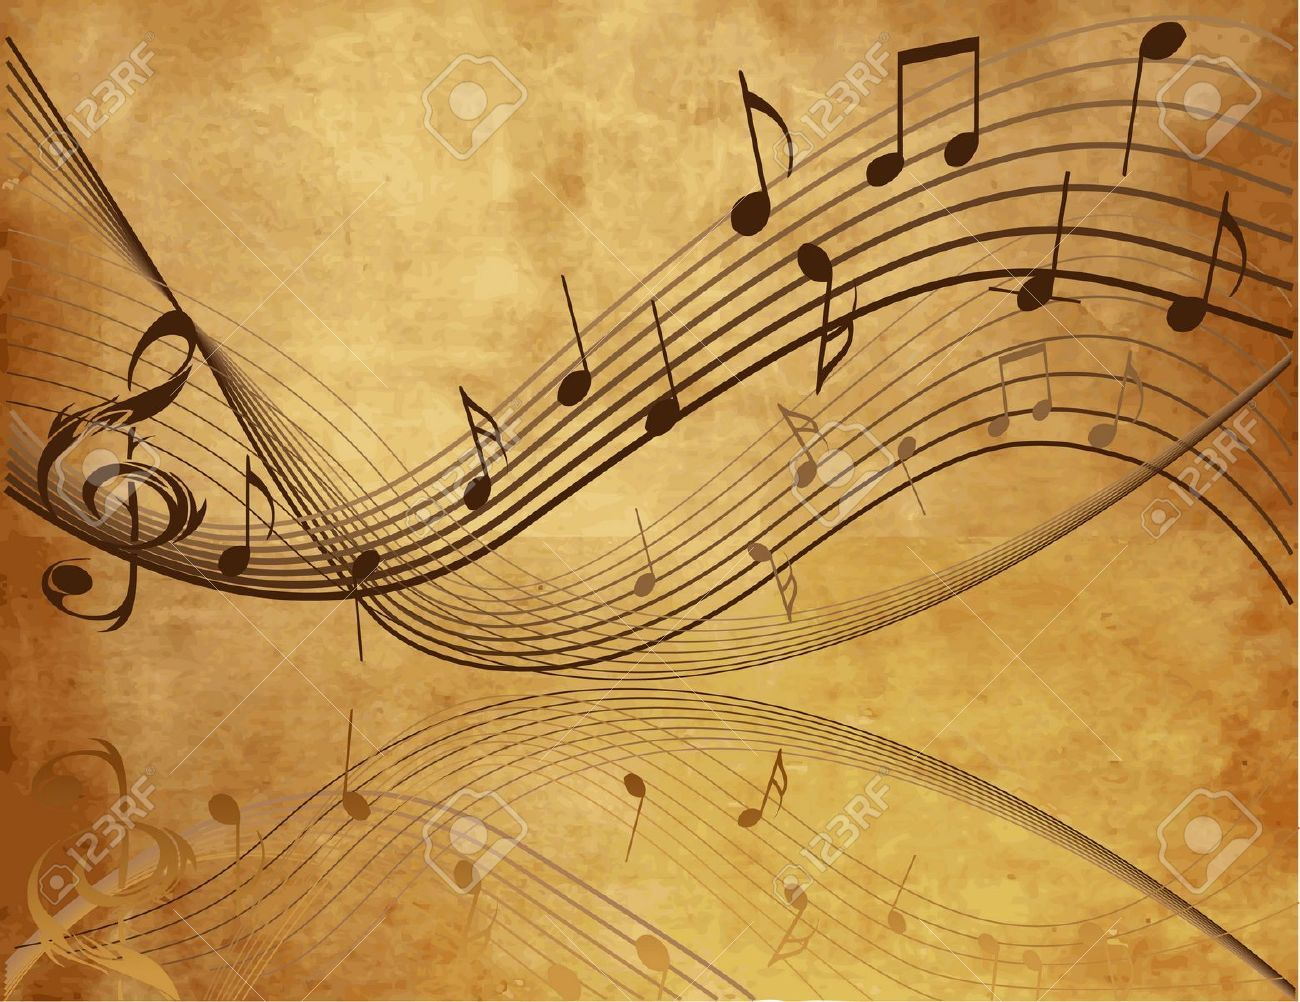 Music Background Images: Vintage Background With Music Notes Royalty Free Cliparts